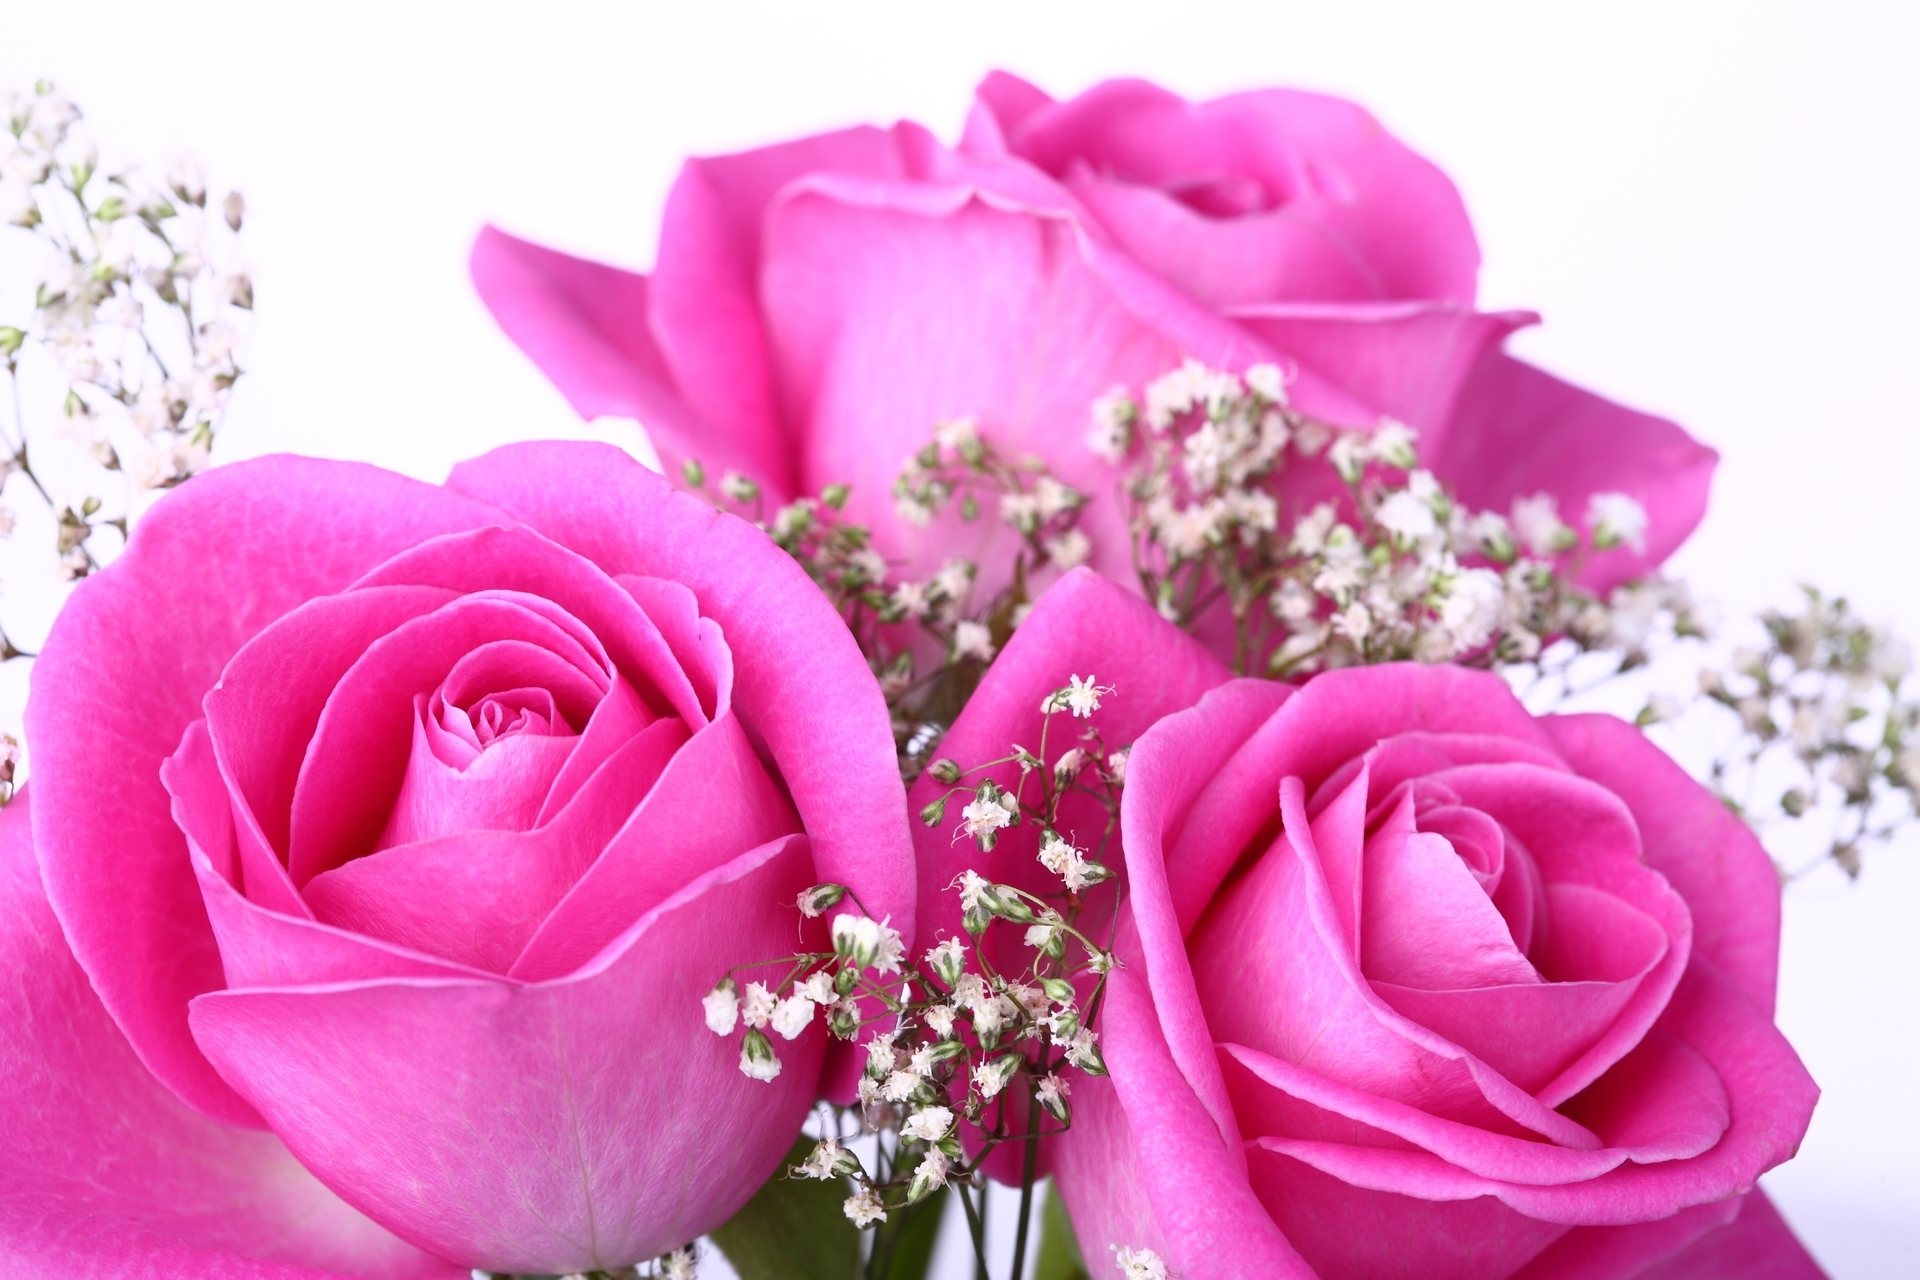 pink rose photos flower images hd of laptop pics roses pictures